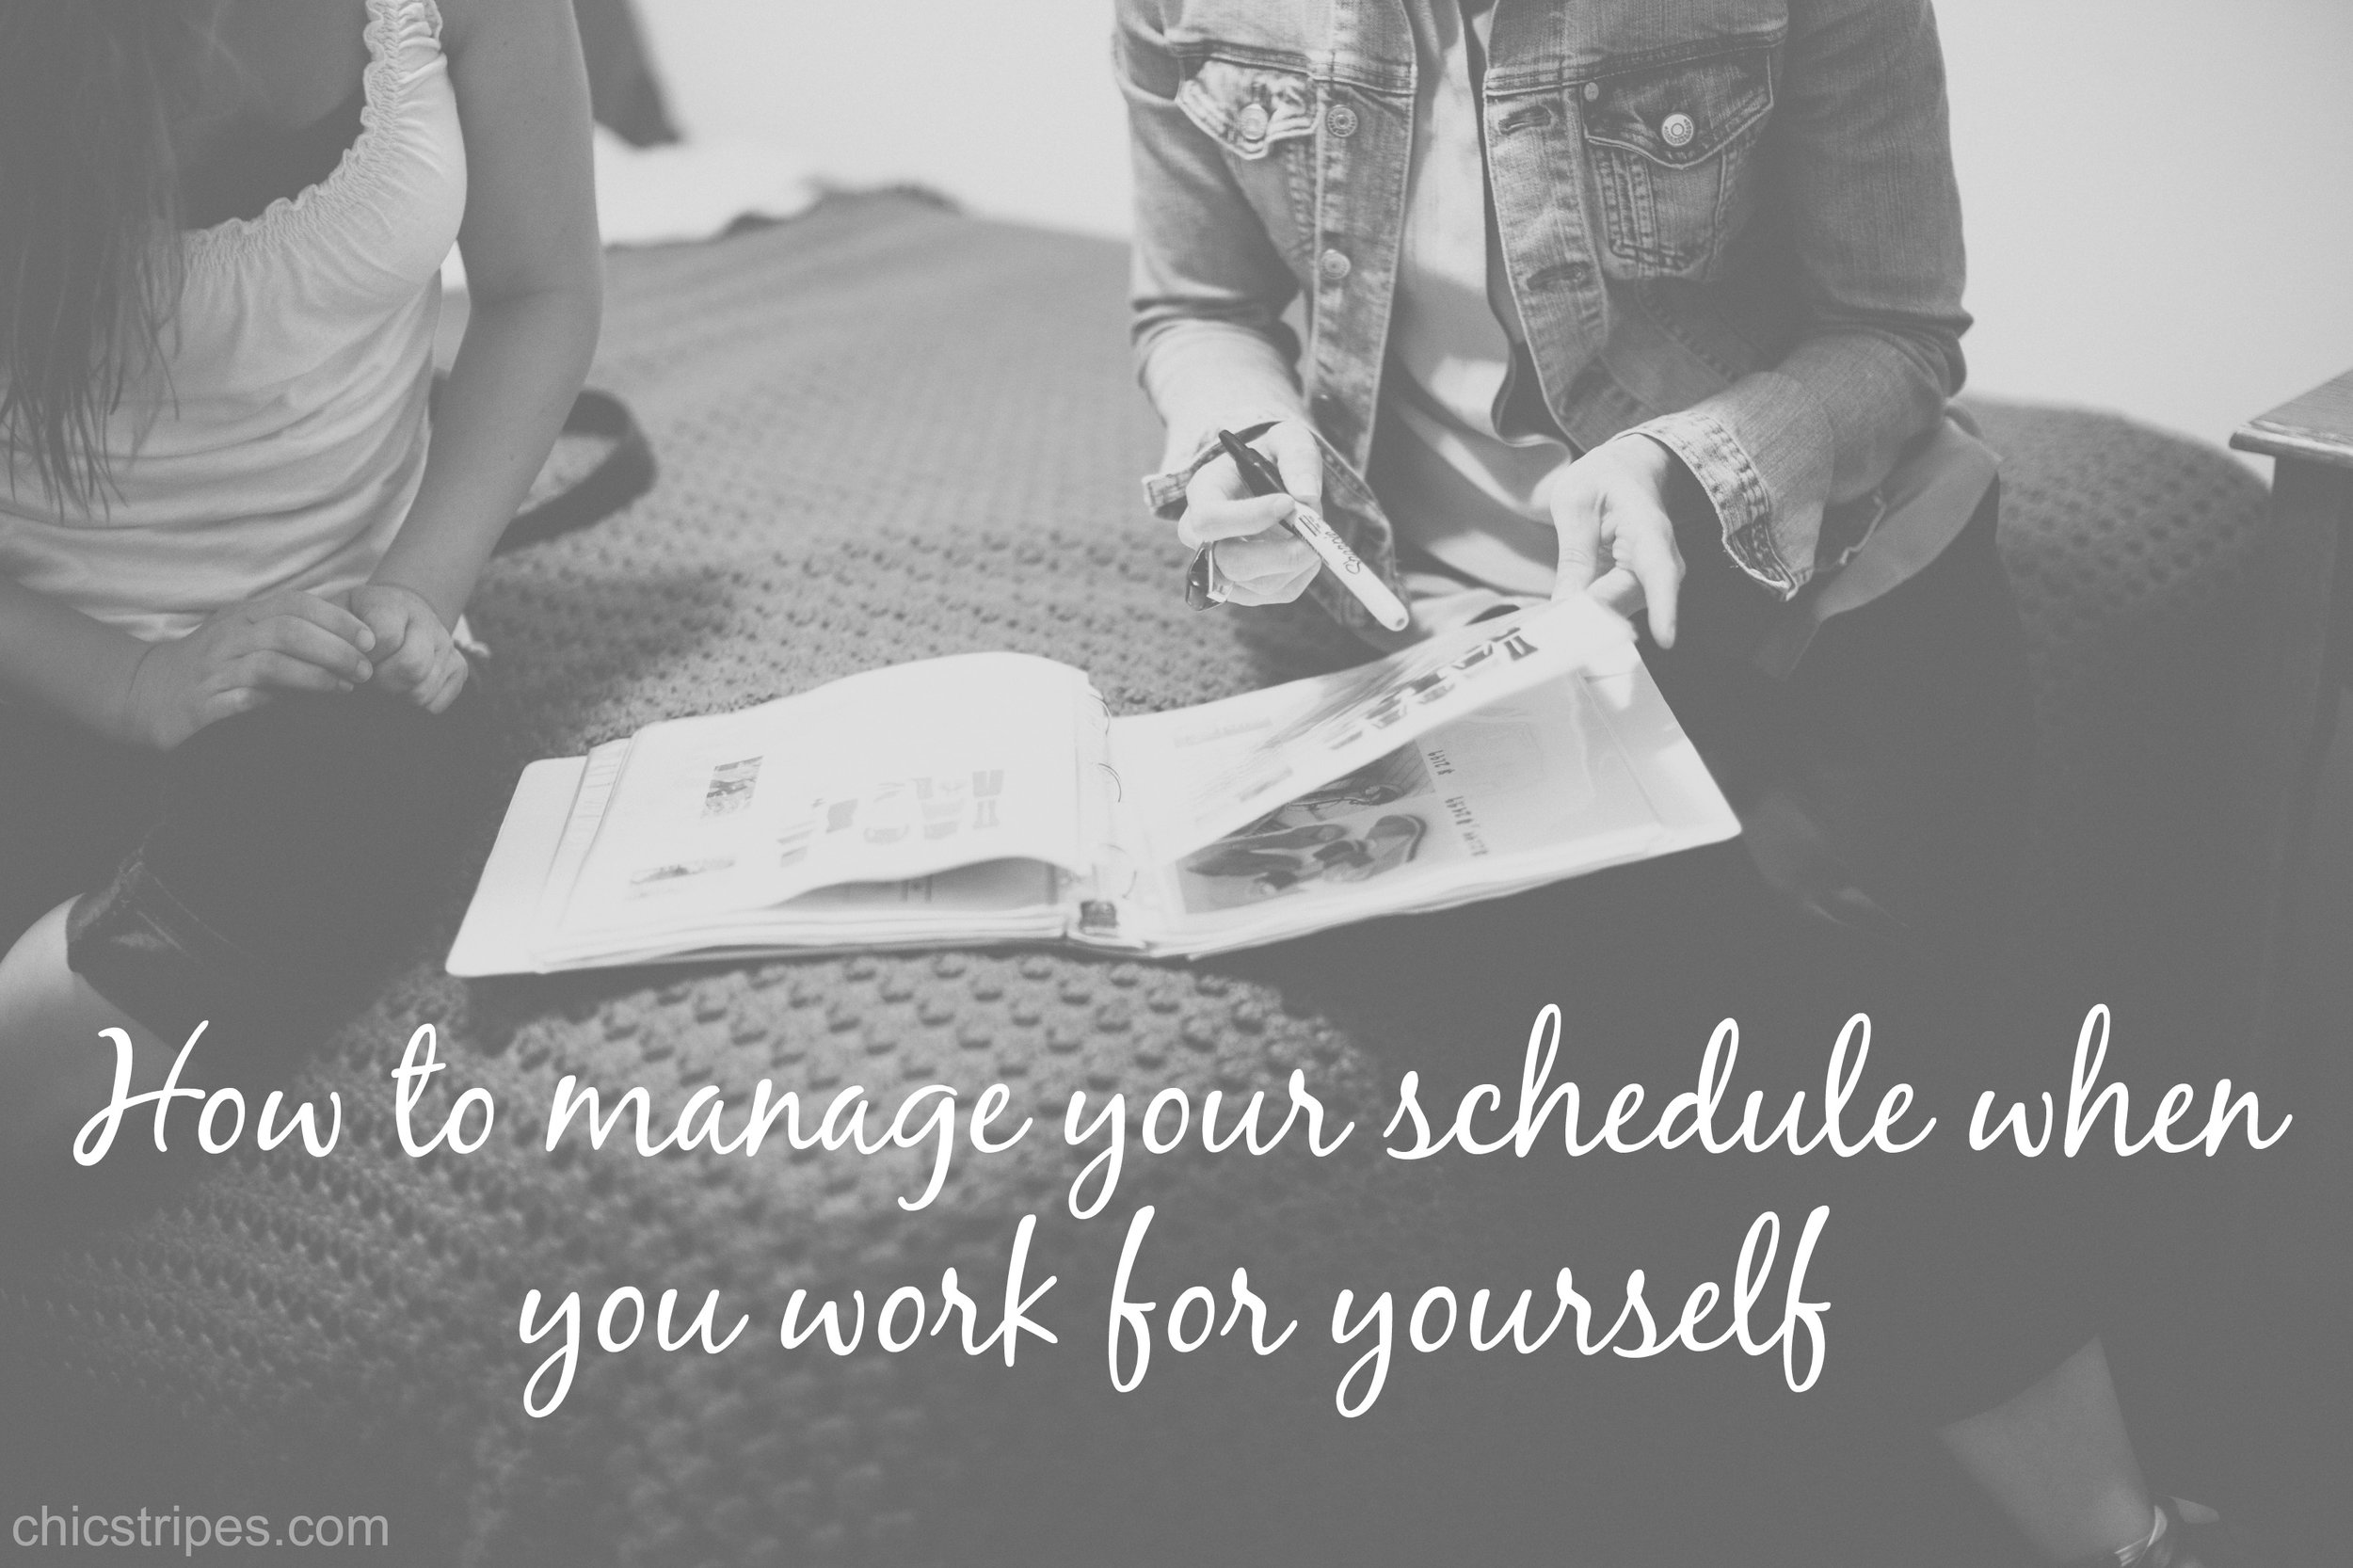 Chic-Stripes-Business-How-to-manage-your-schedule-when-you-work-for-yourself-2016-05-13.jpg